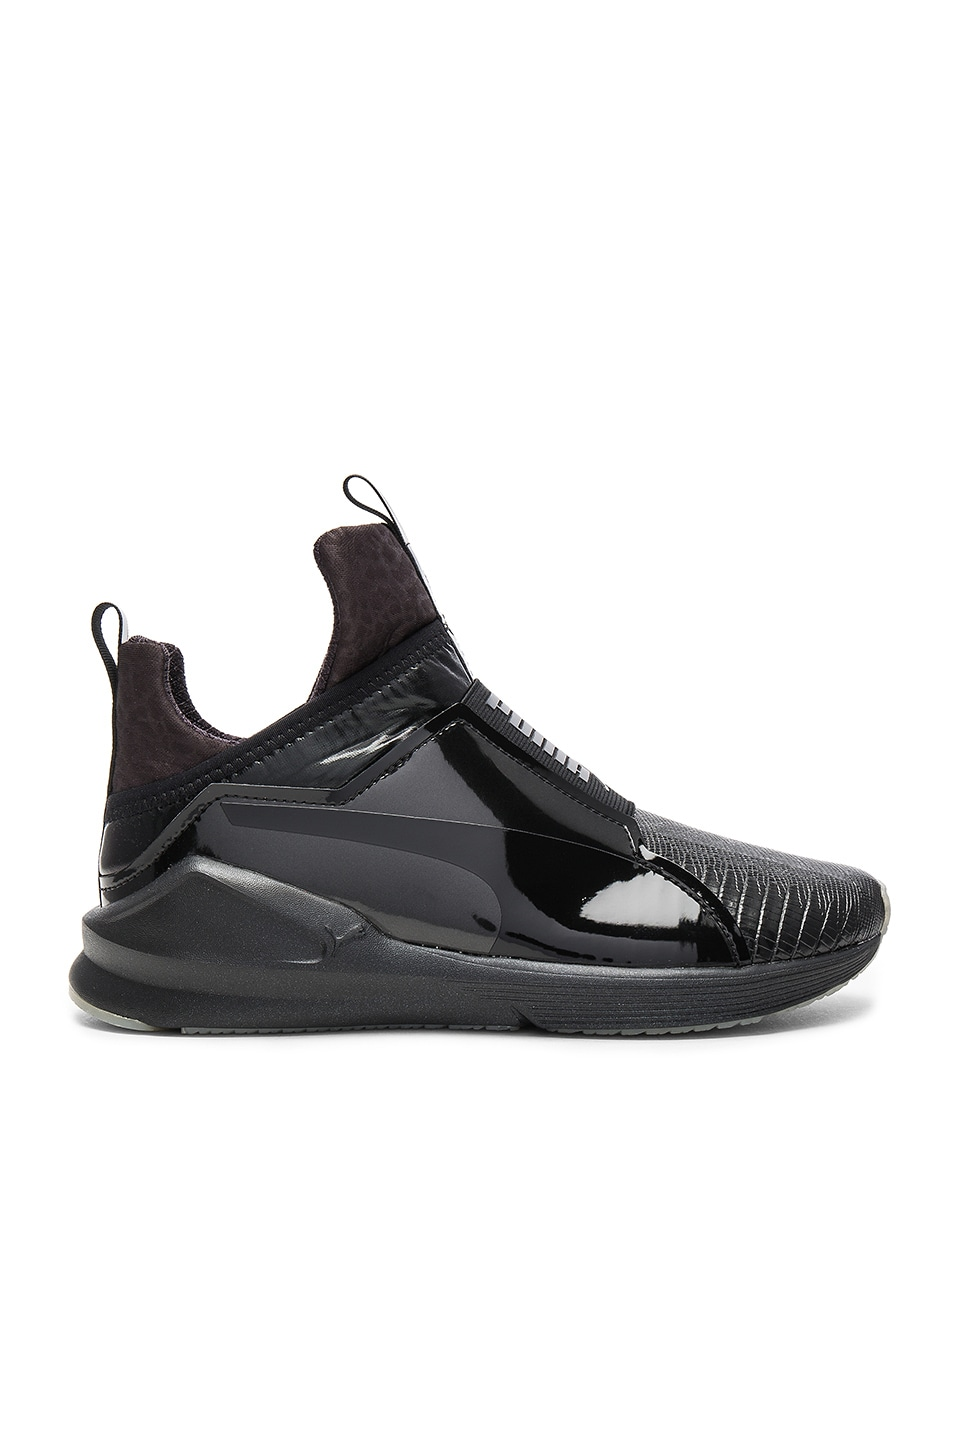 Puma Fierce Metallic Sneaker in Puma Black